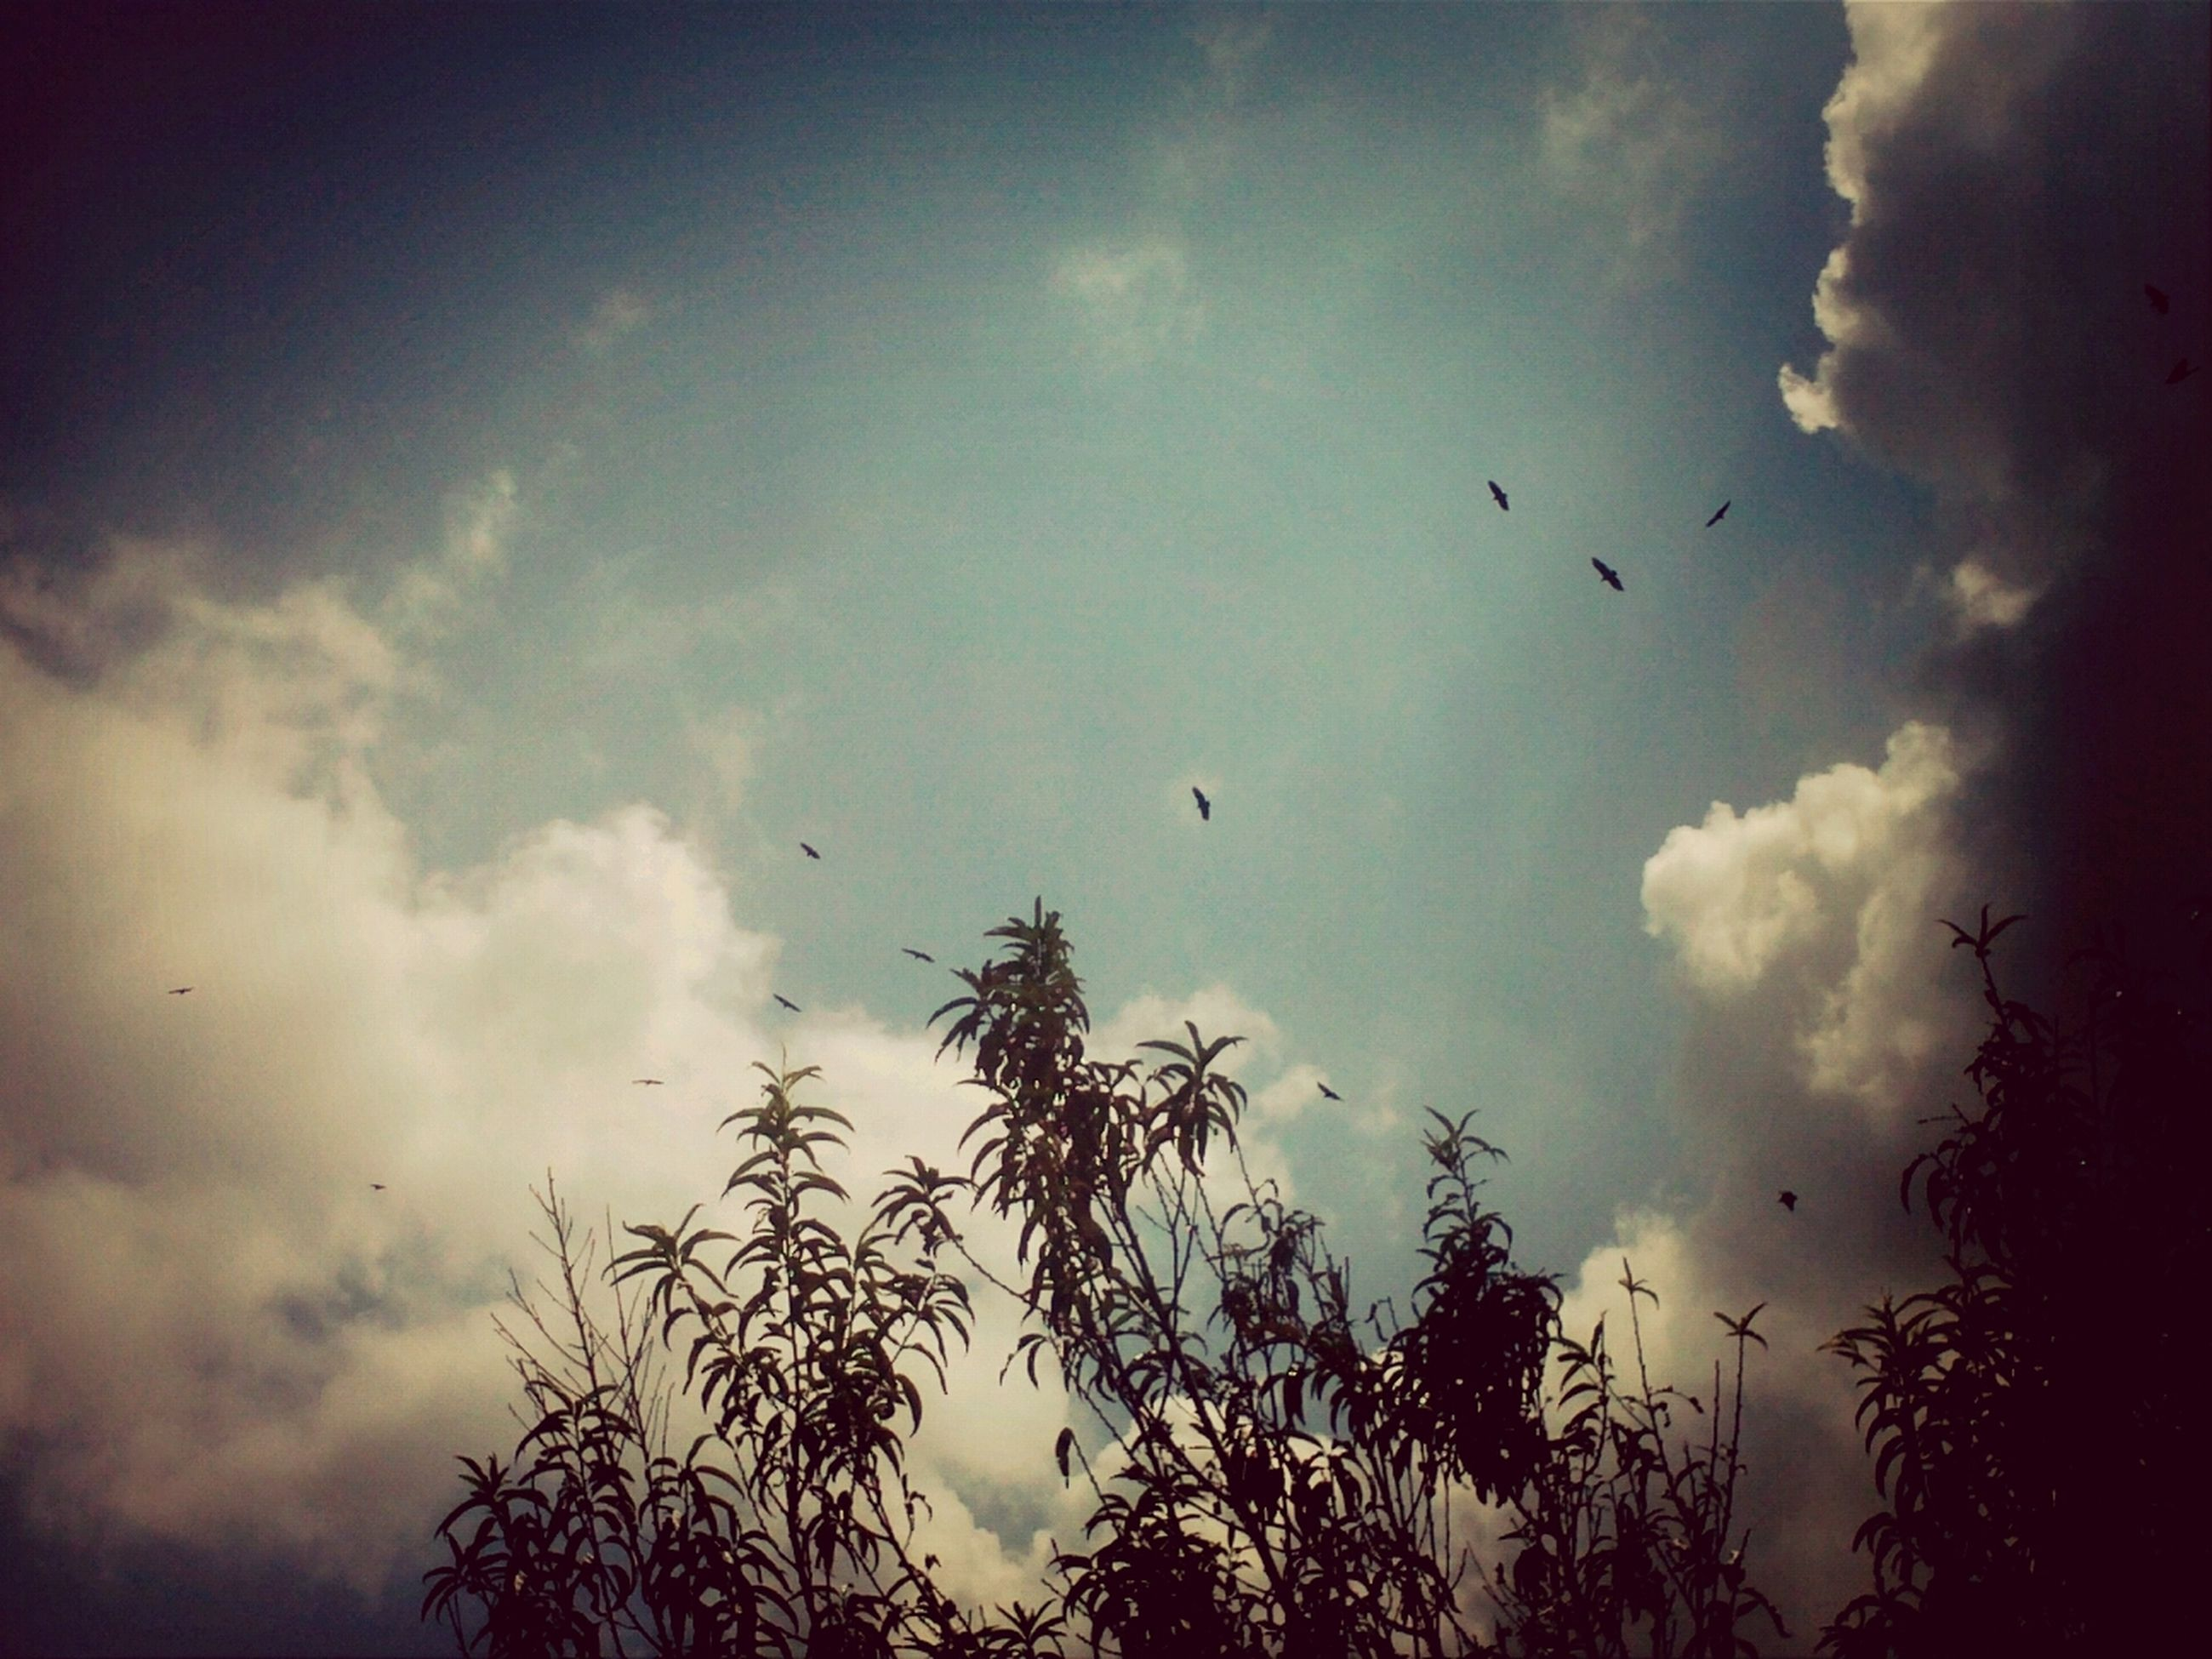 bird, animal themes, flying, animals in the wild, sky, wildlife, low angle view, flock of birds, cloud - sky, silhouette, nature, tree, beauty in nature, cloudy, cloud, mid-air, tranquility, scenics, outdoors